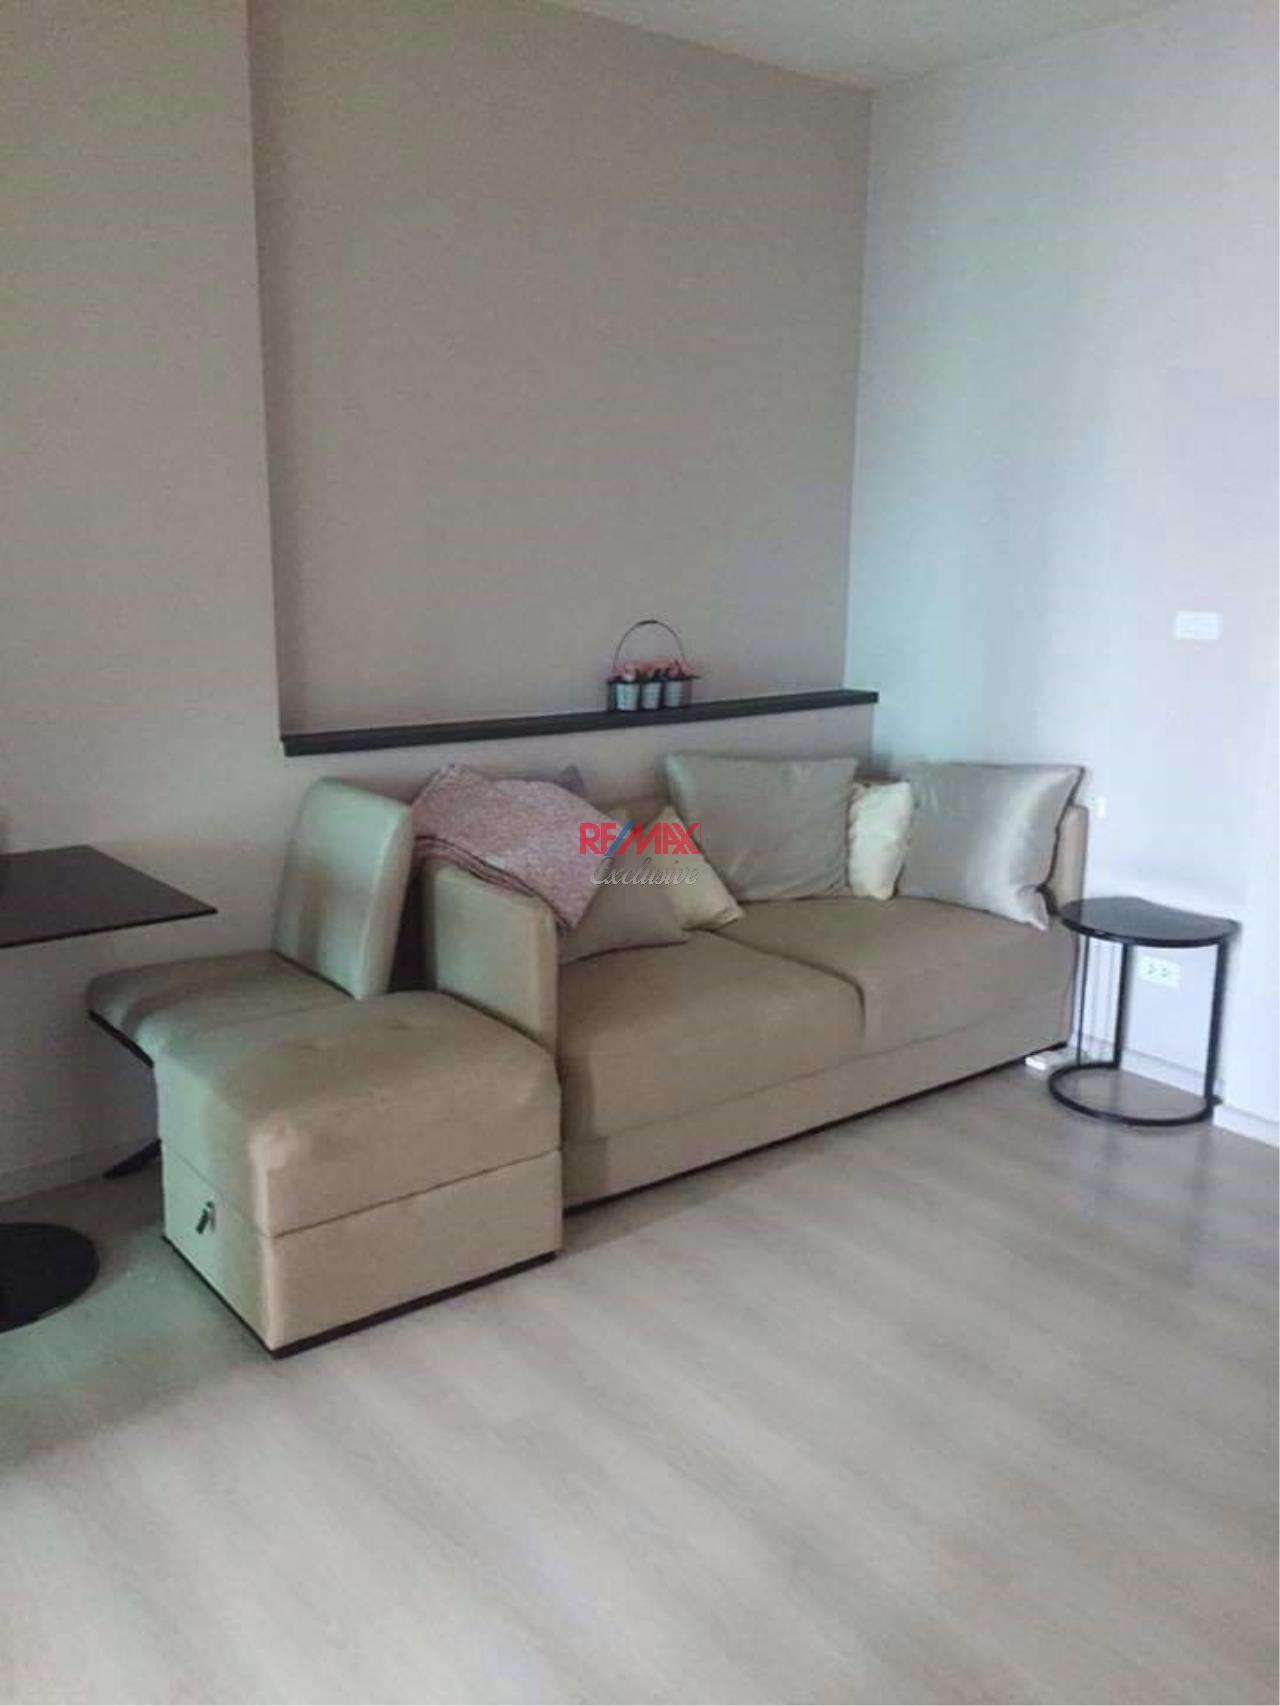 RE/MAX Exclusive Agency's Trendy 1 bedroom for sale @Life Ratchada - Huay Kwang 3